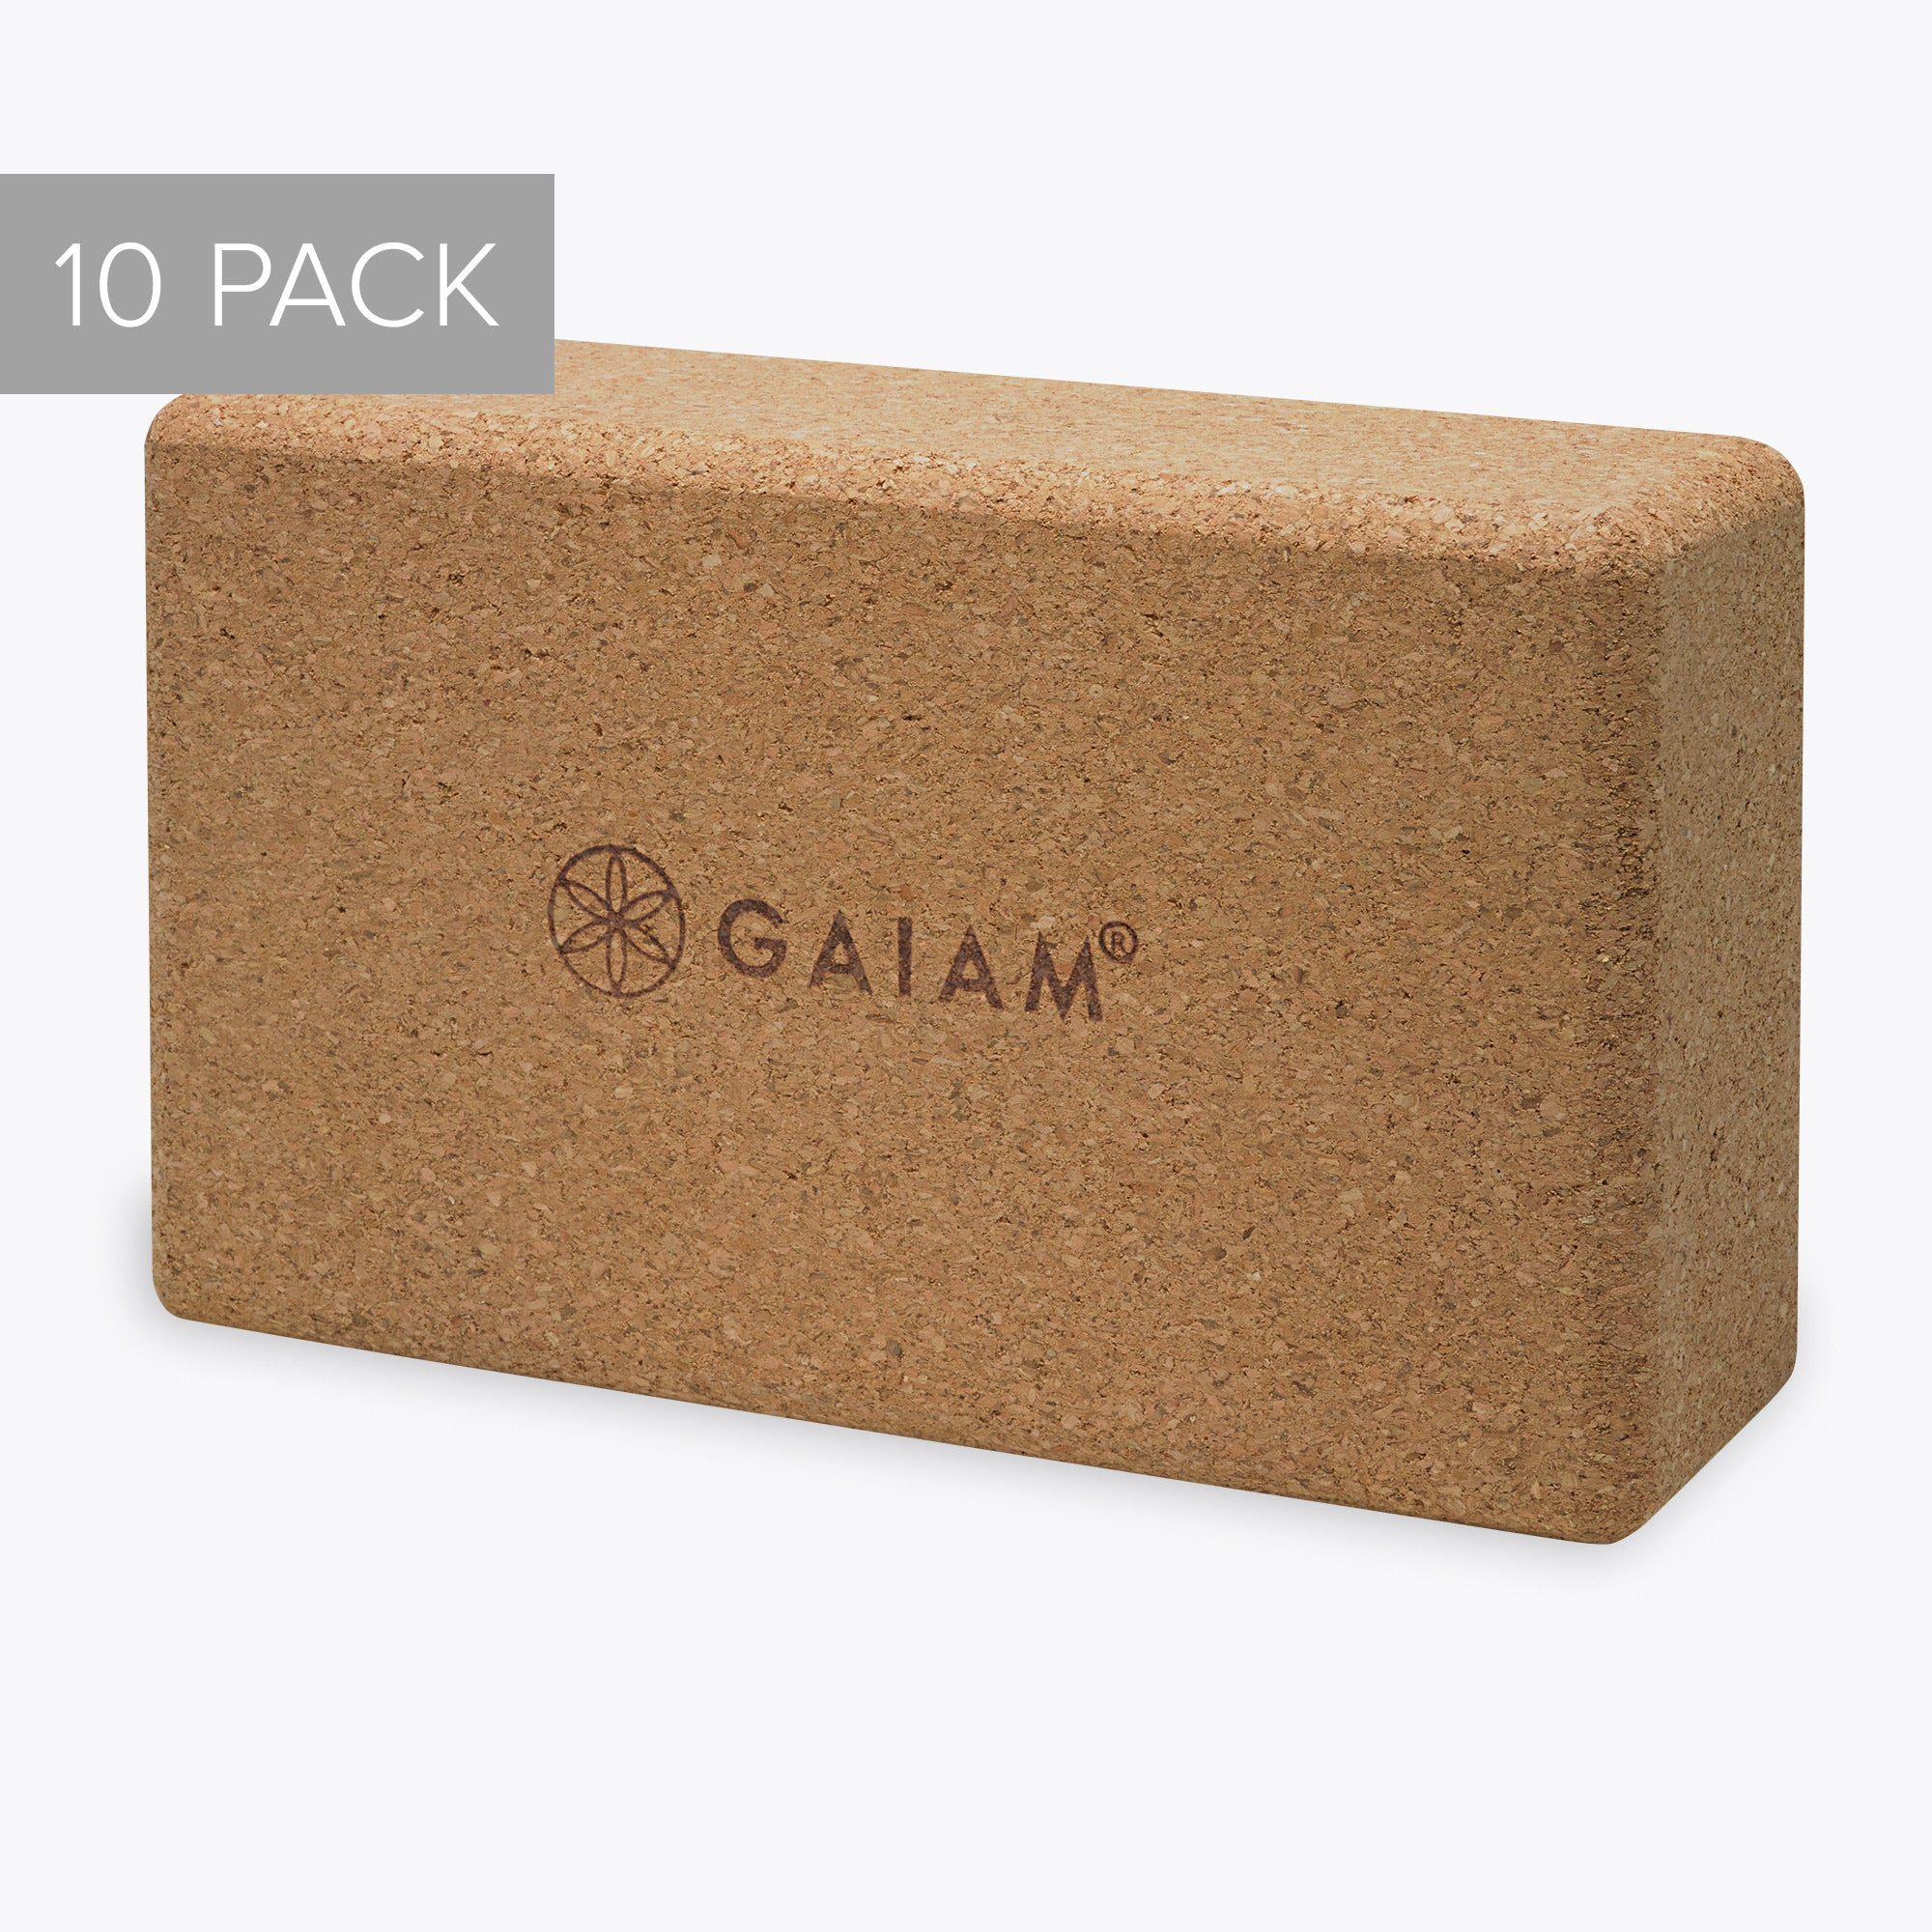 Gaiam Cork Yoga Brick - 10 Pack